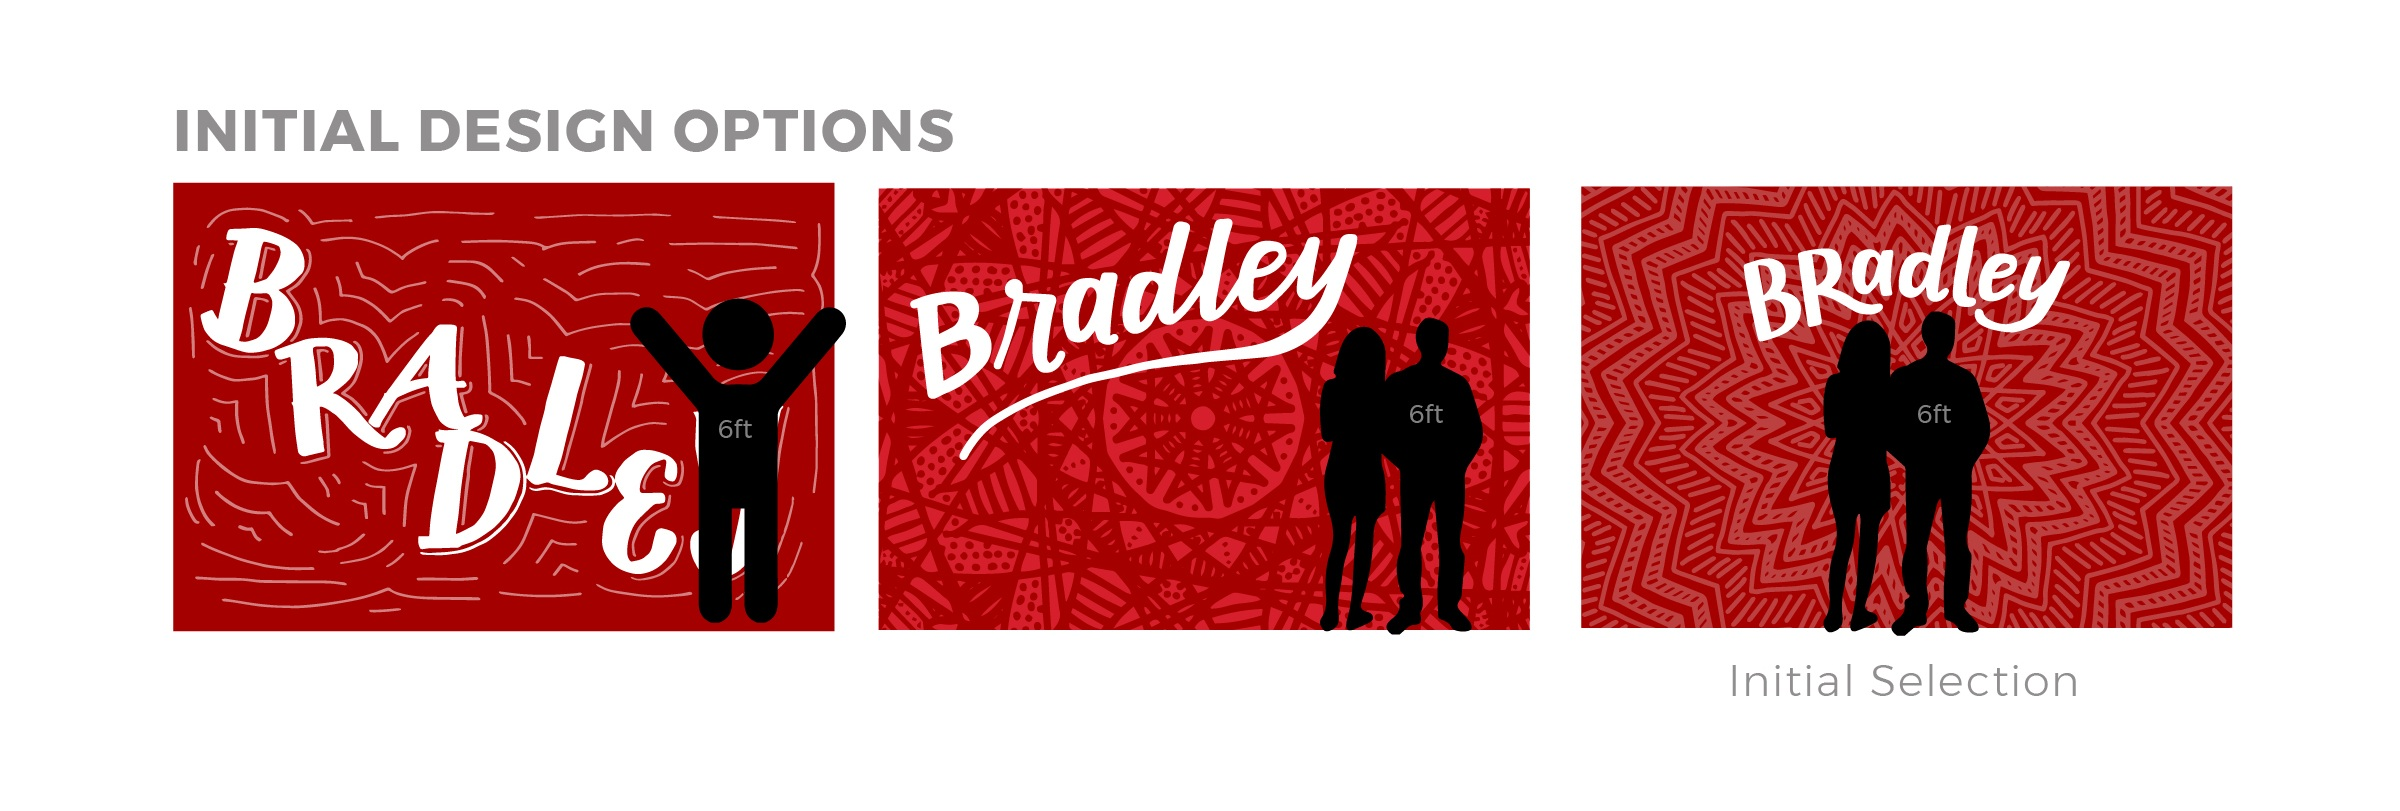 Bradley+Mural+Design+-+Initial+Design+Options